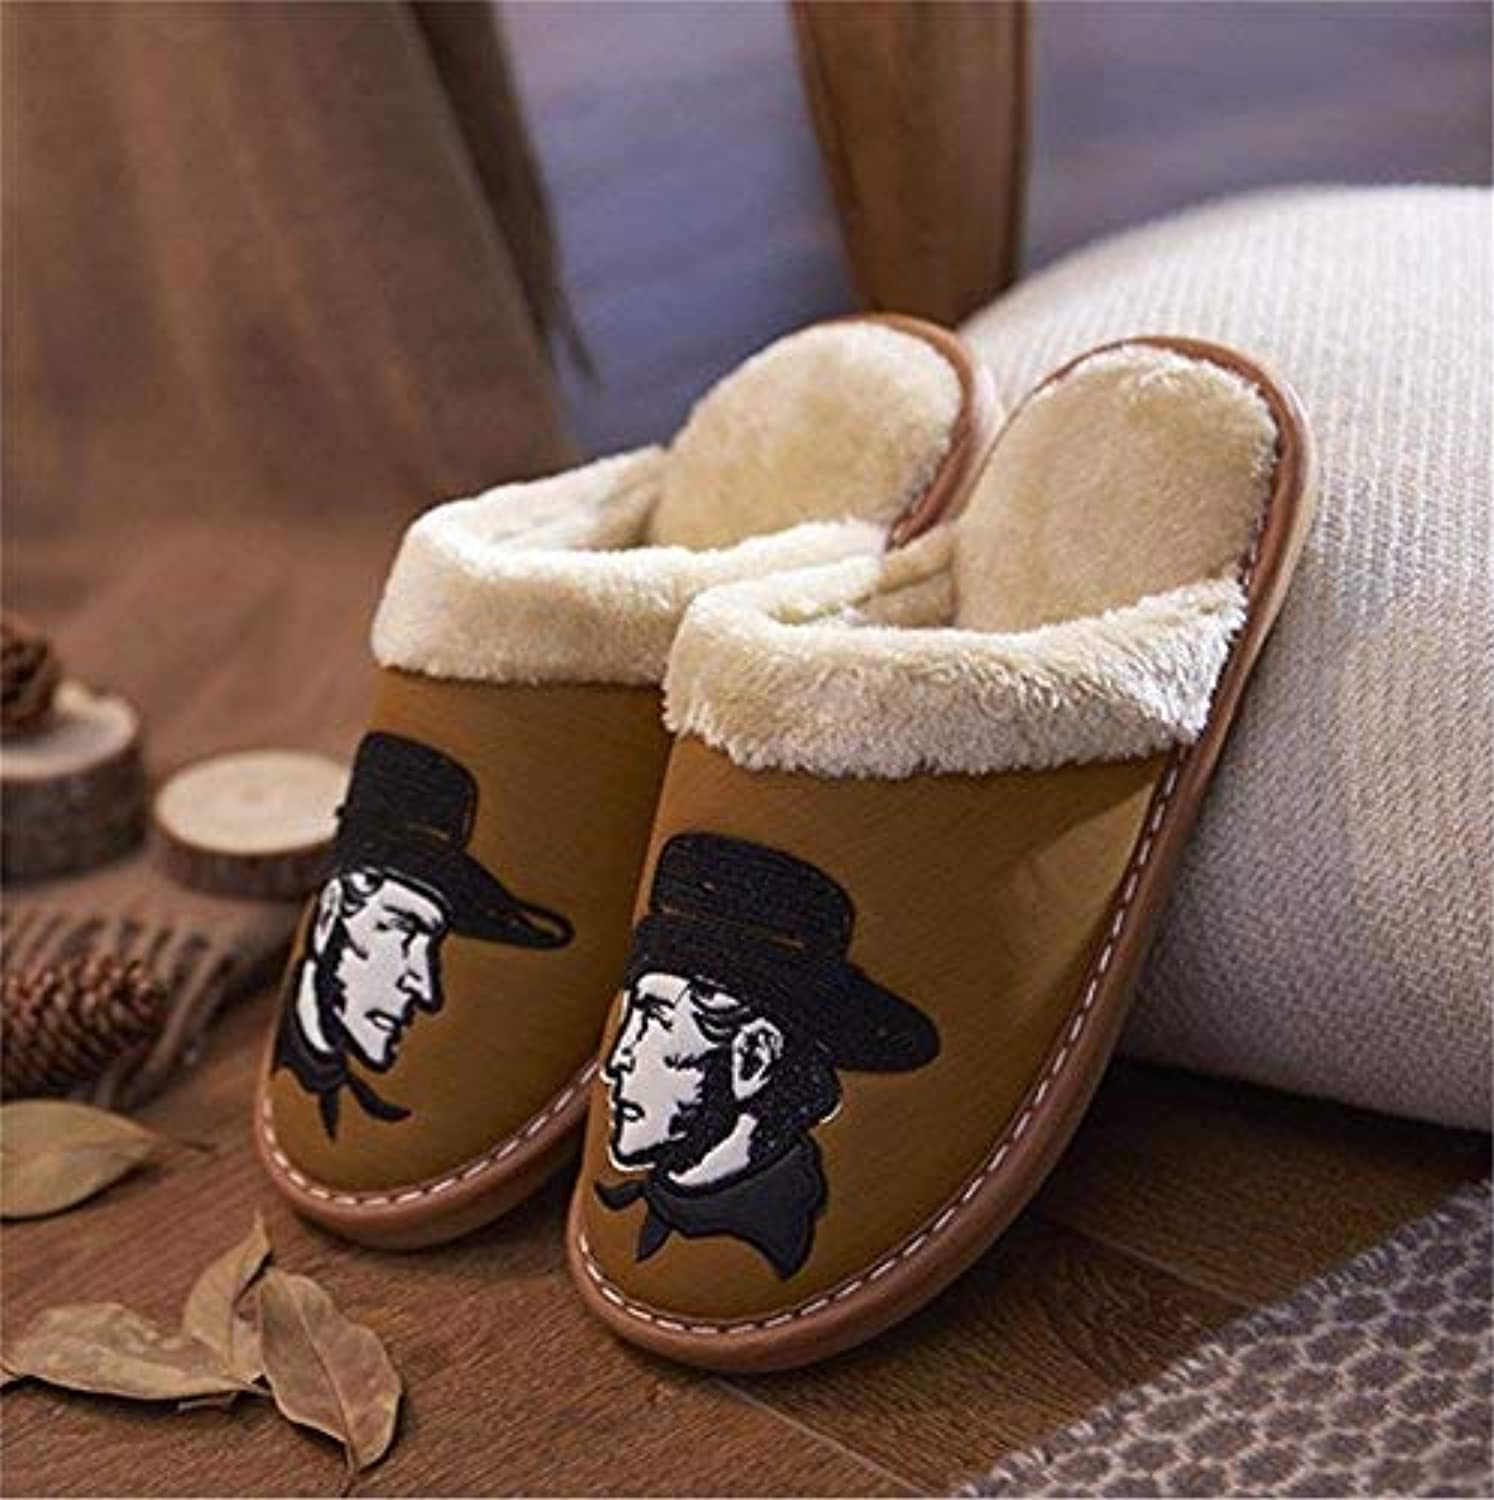 Lady Slippers Men's Warm Slippers Casual Faux-Leather Slippers Cow Boy Side Face Printed Pattern Warm in Autumn and Winter Wild Indoor Slippers